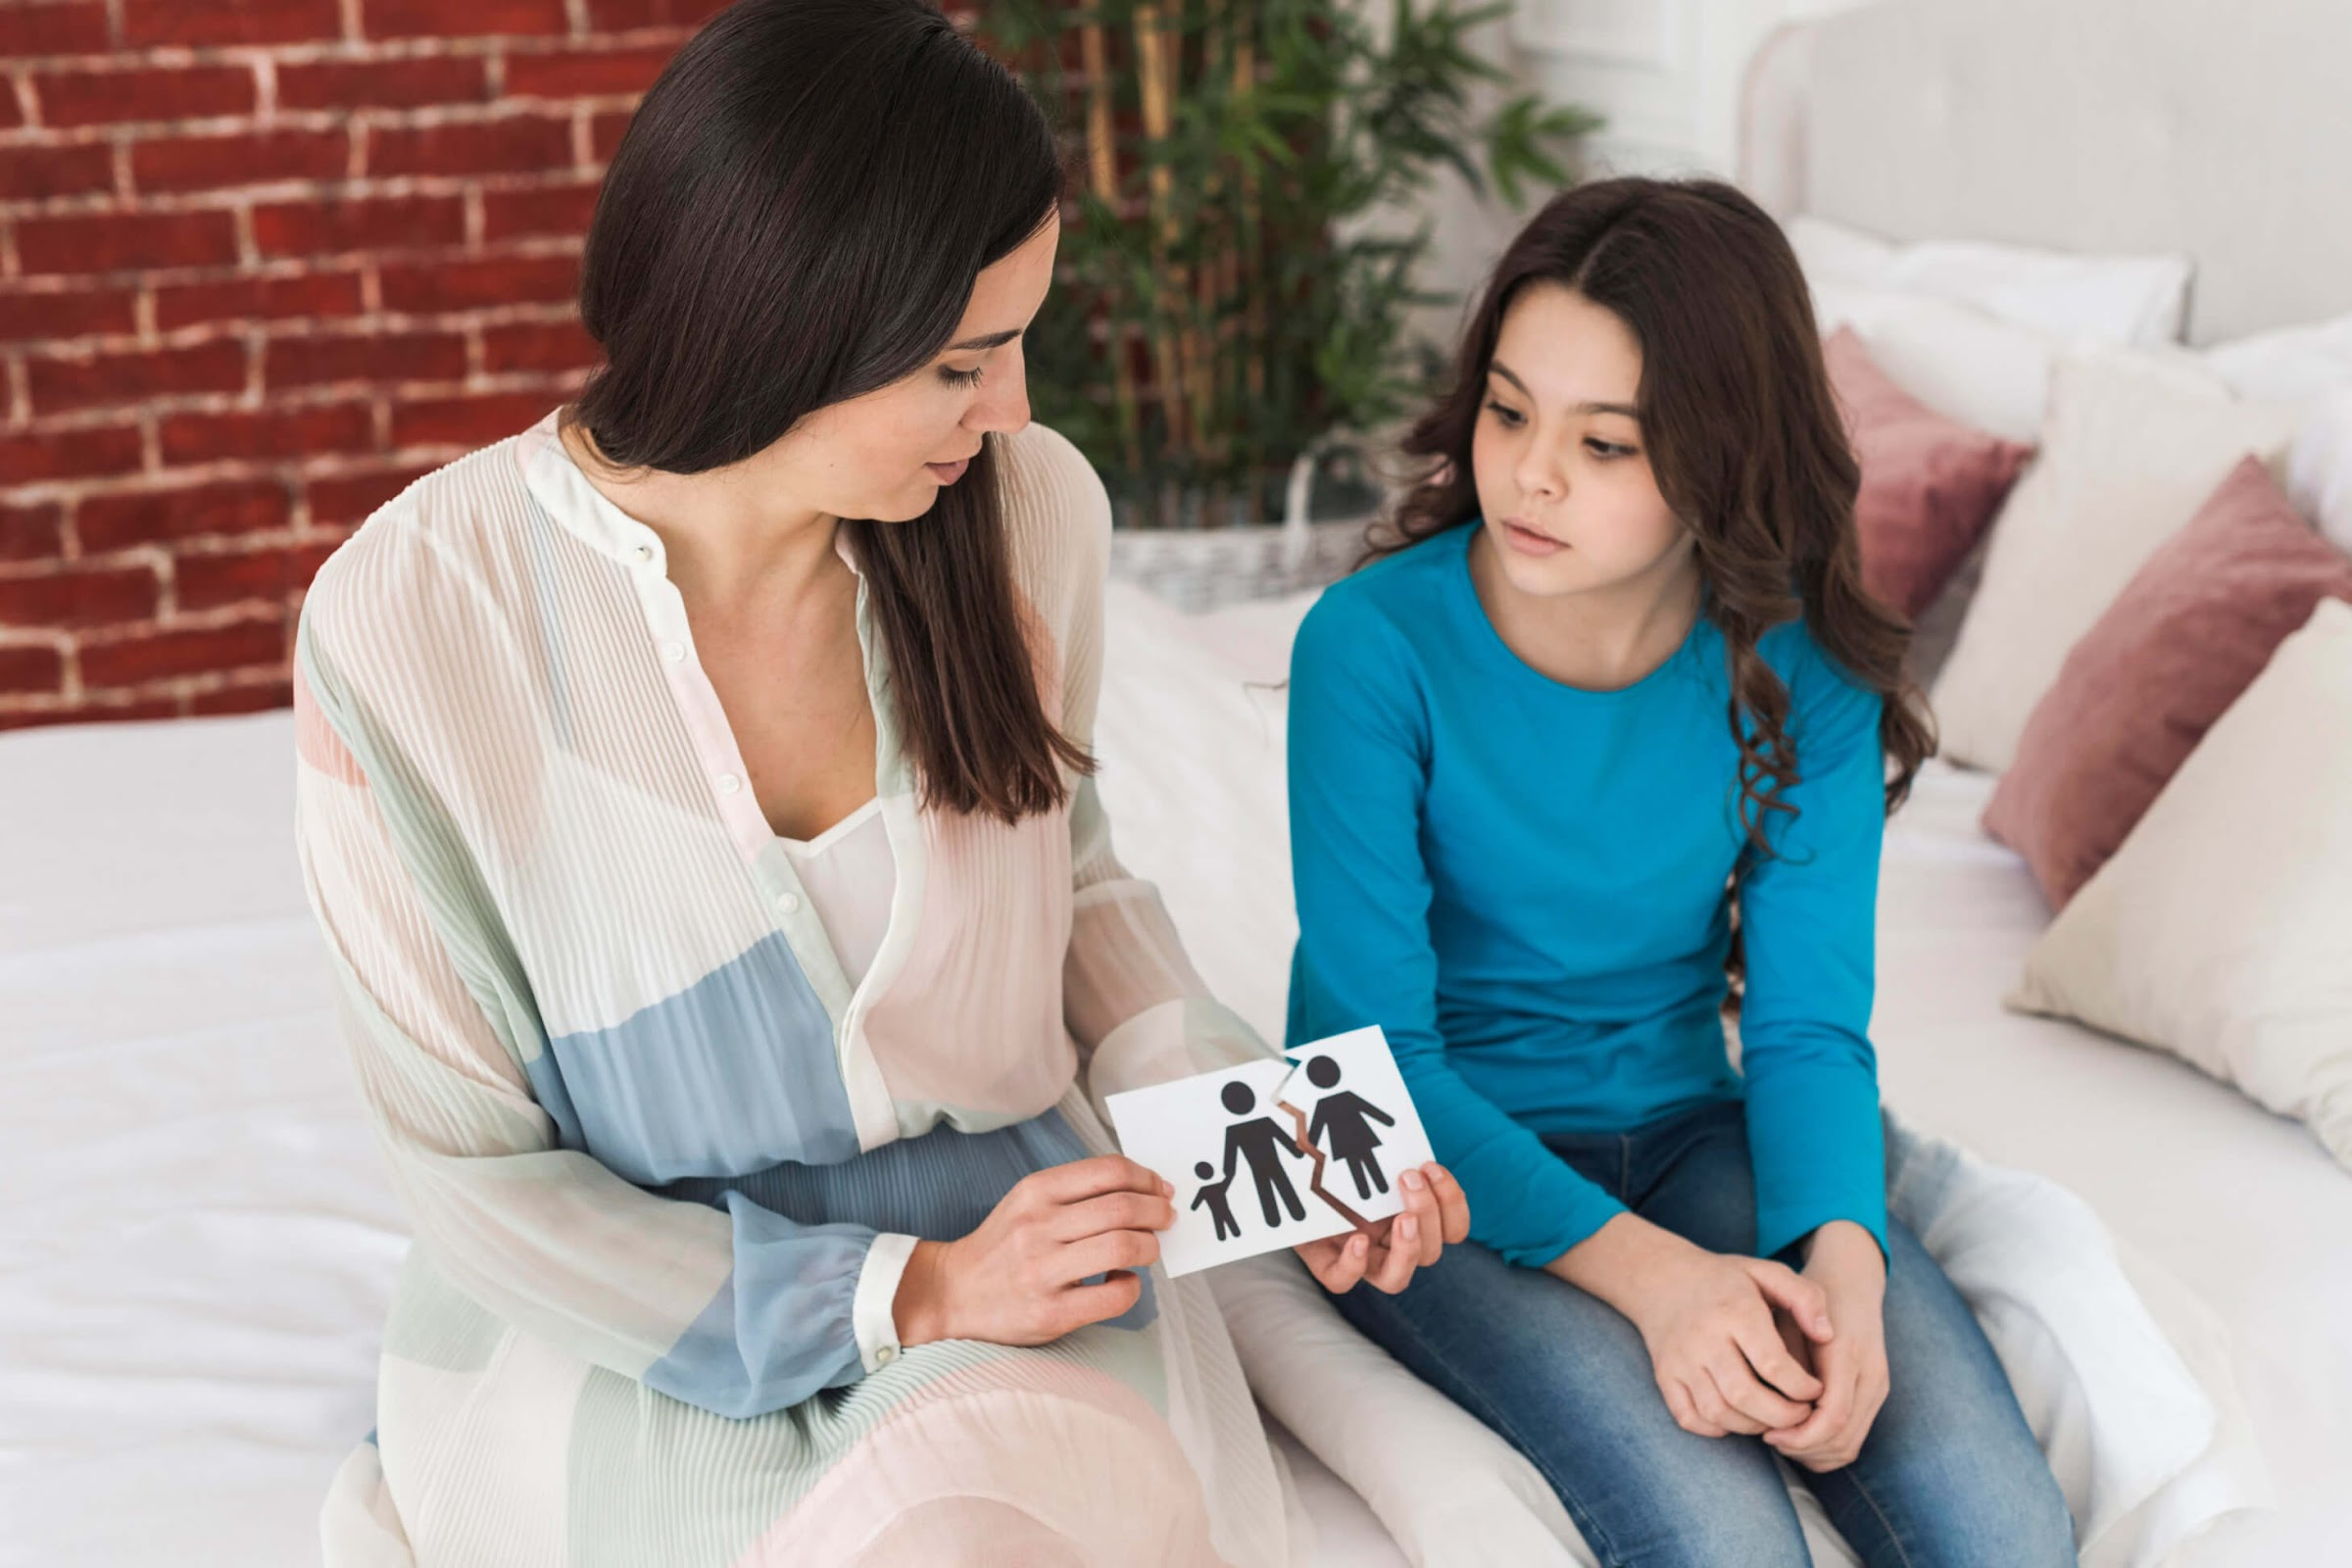 alk About Divorce to Young Children